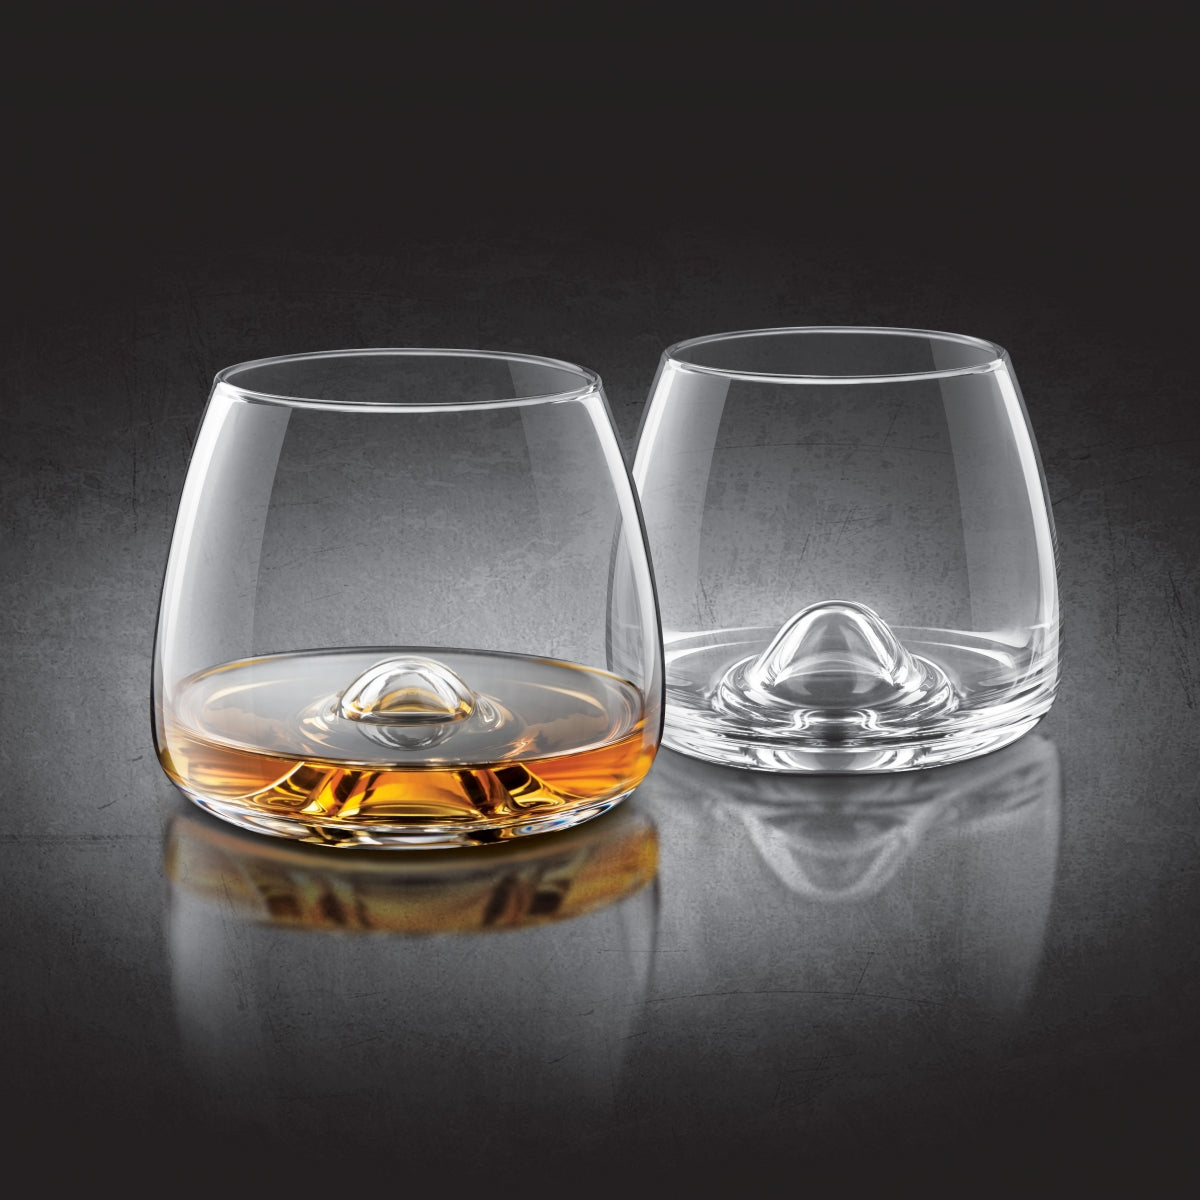 Whiskey Lead-Free Crystal Glasses-Set of 2